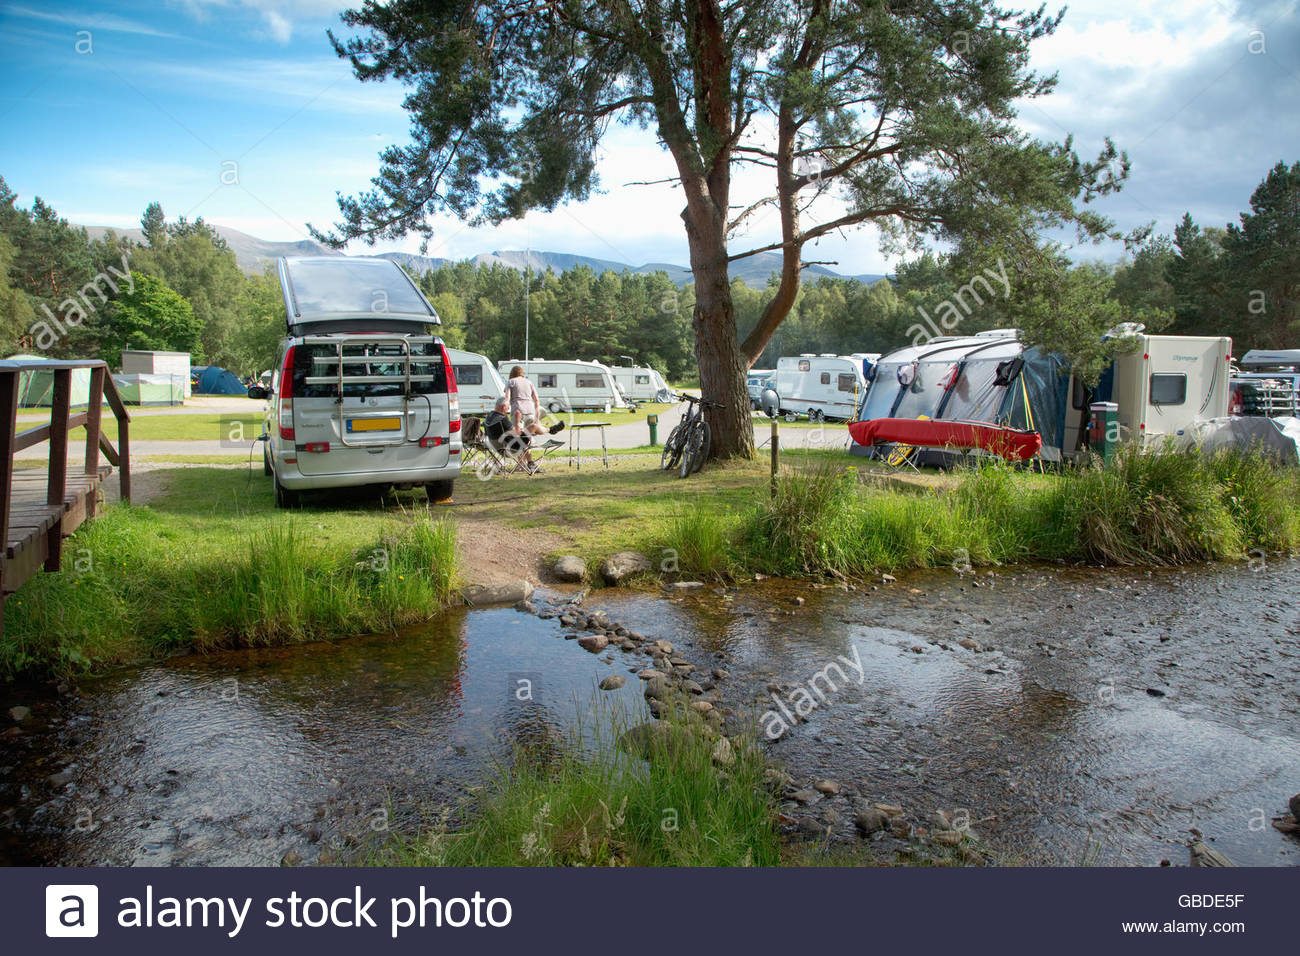 The busy caravan and campsite at Glenmore Forest Park near Aviemore, Highlands of Scotland. - Stock Image